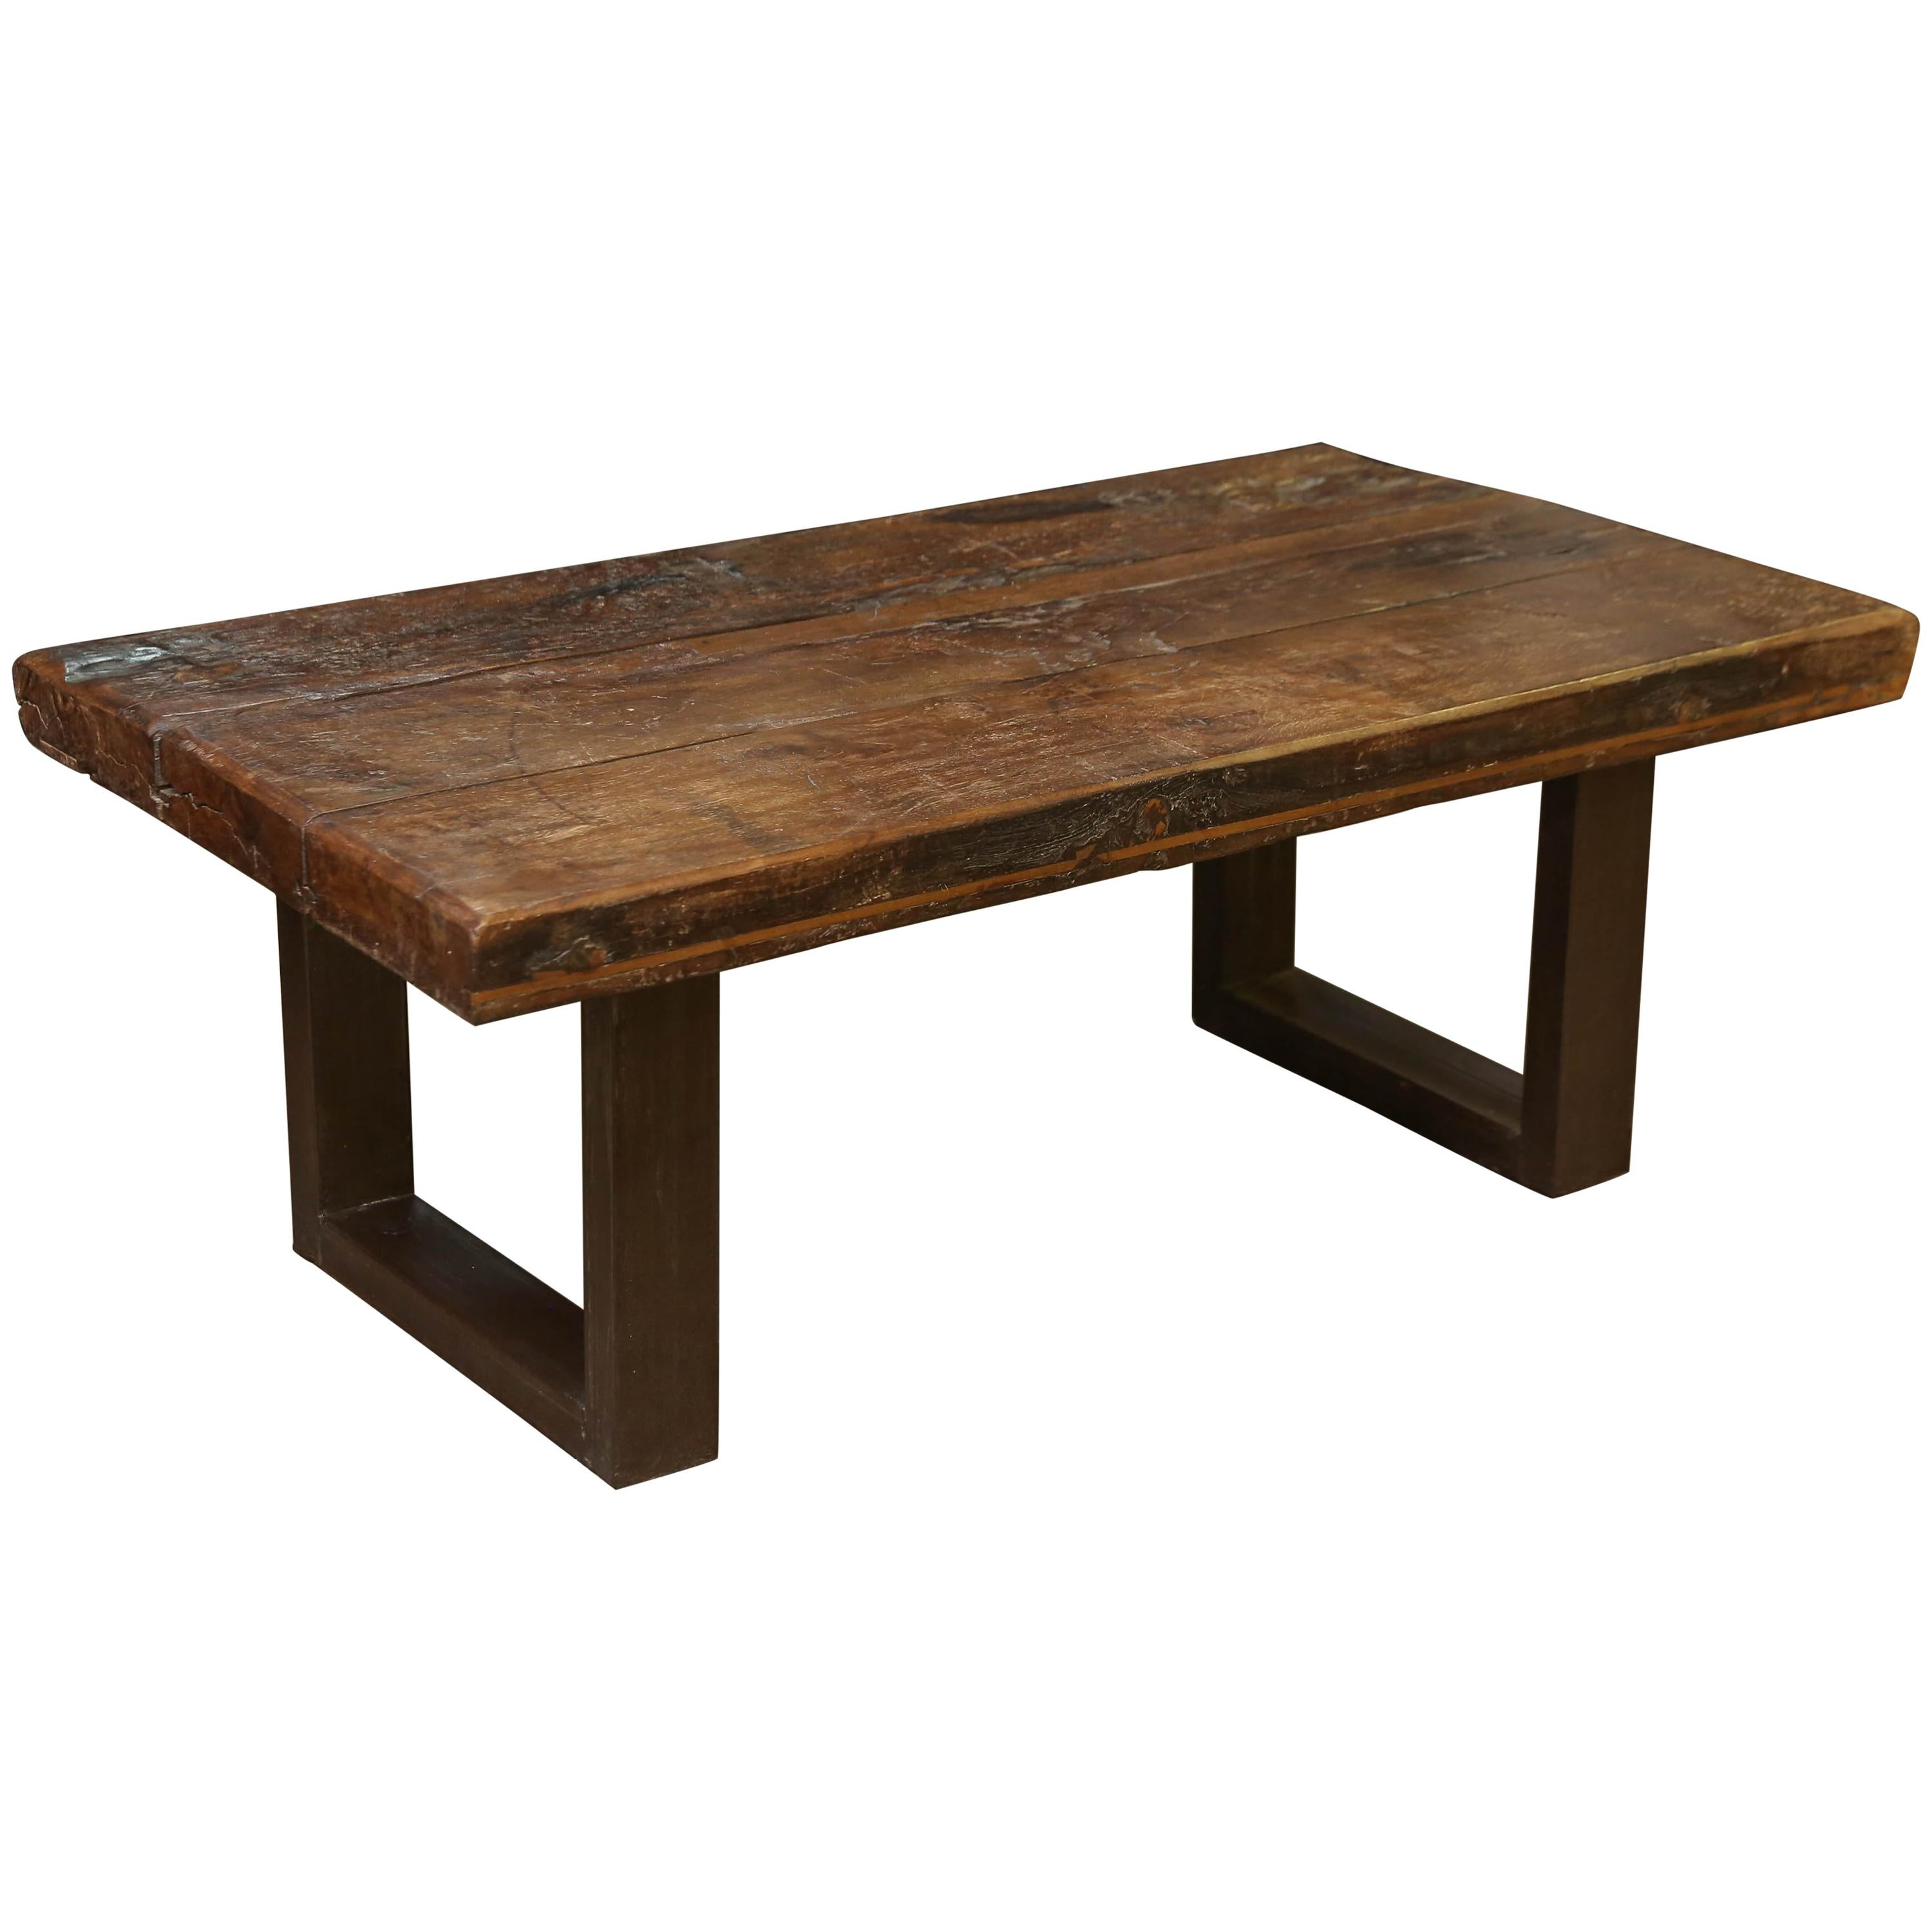 1810s Solid Thick Teak Wood Coffee Table From A Game Santuary In Assam For  Sale